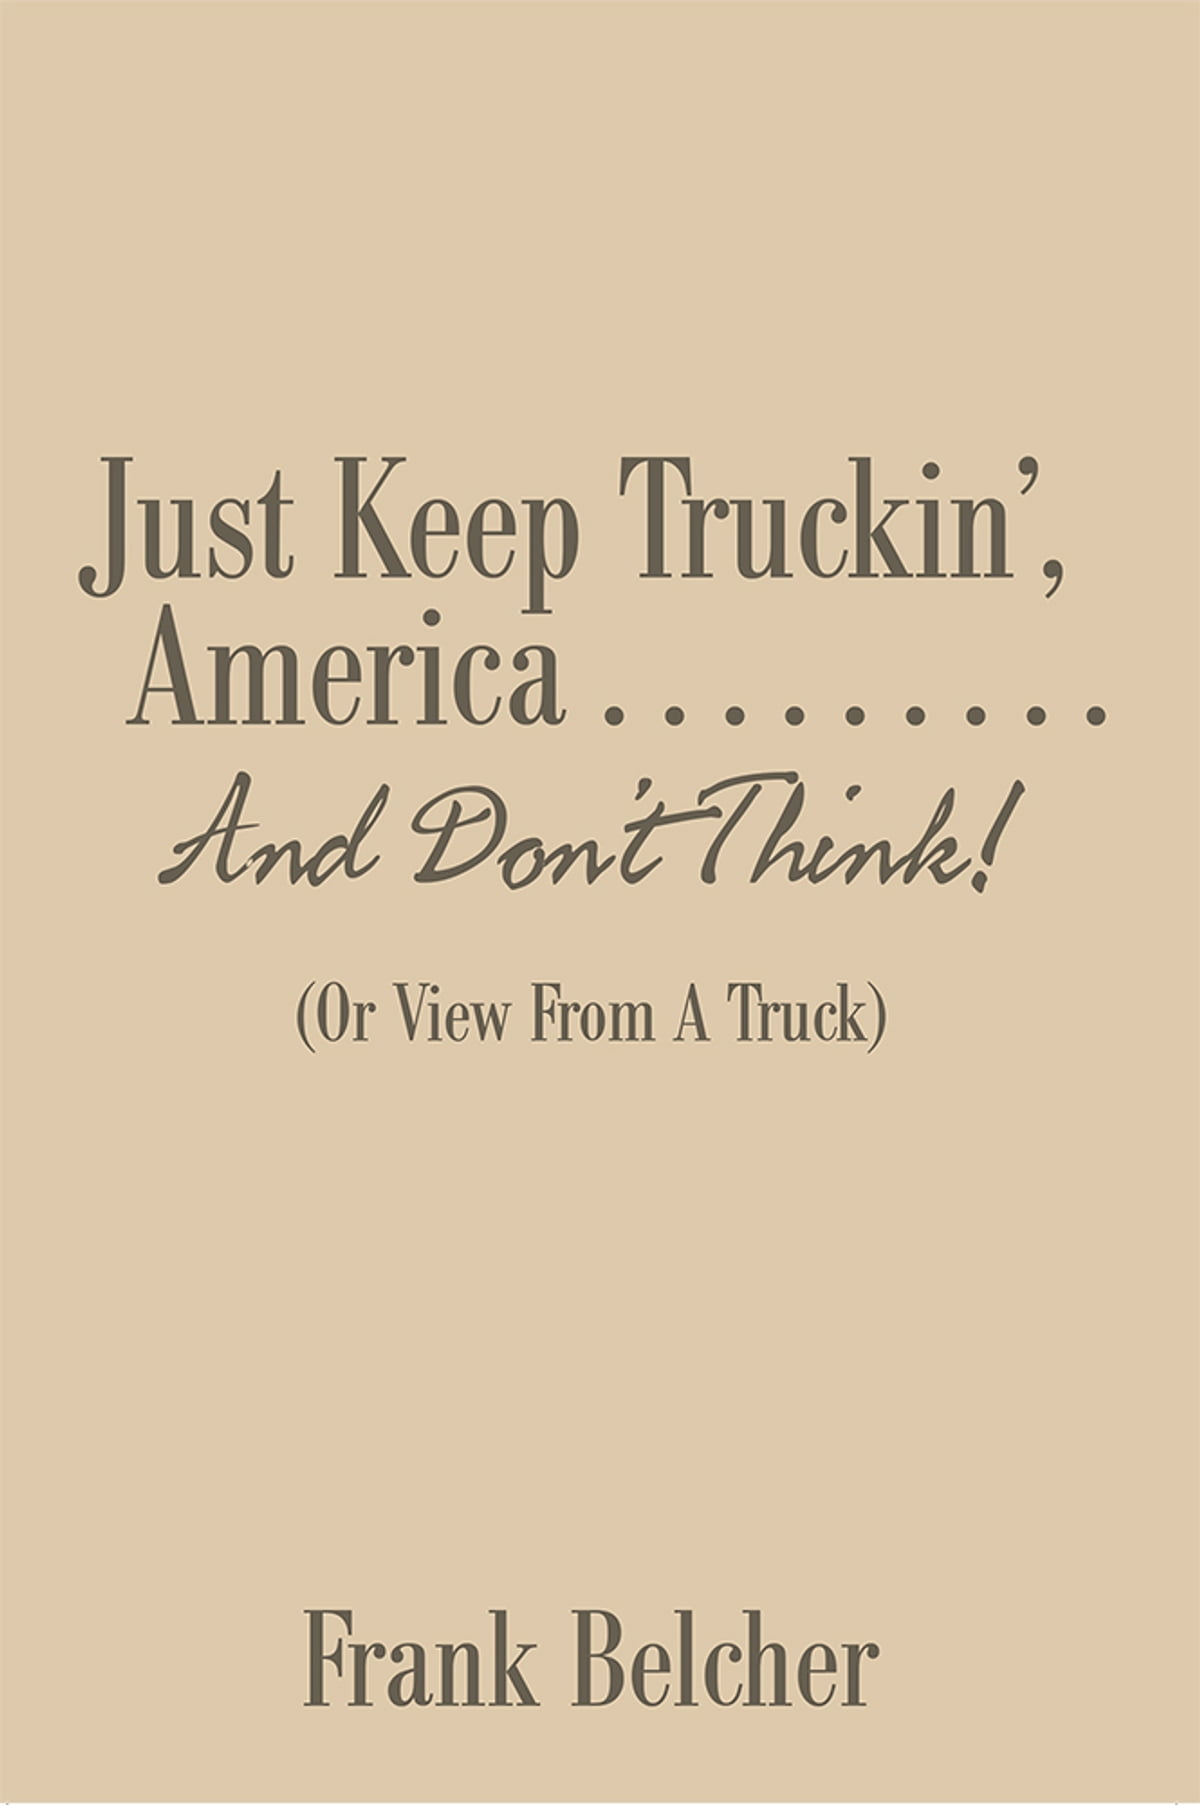 Just Keep Truckin', America                   and Don'T Think! ebook by  Frank Belcher - Rakuten Kobo